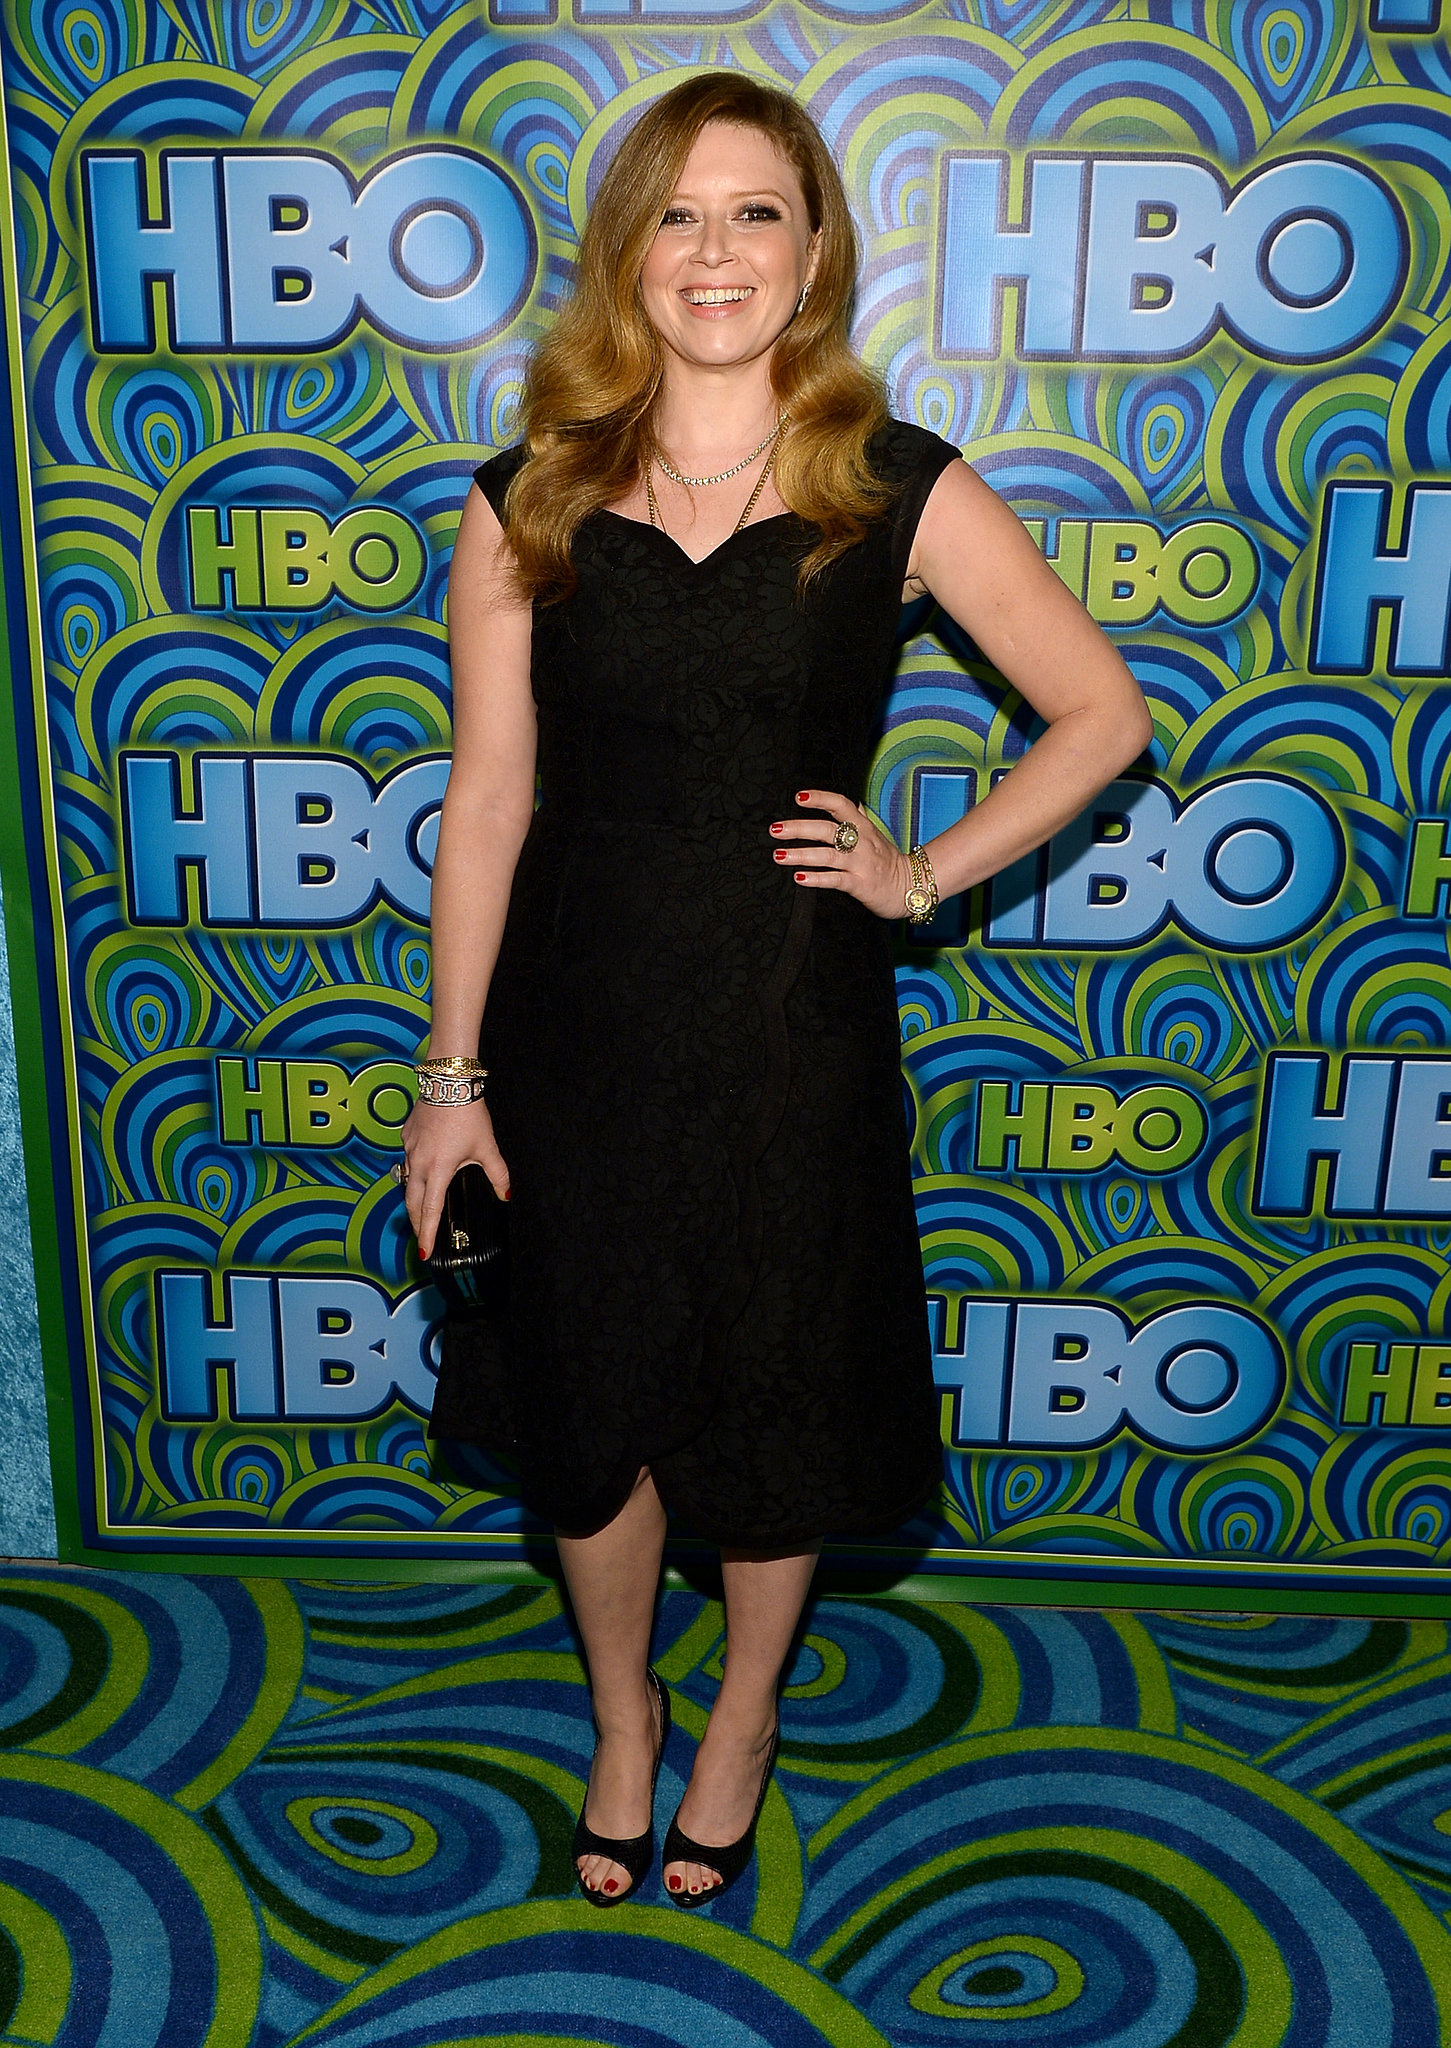 Natasha Lyonne kept it simple in a feminine black dress and open-toe heels.